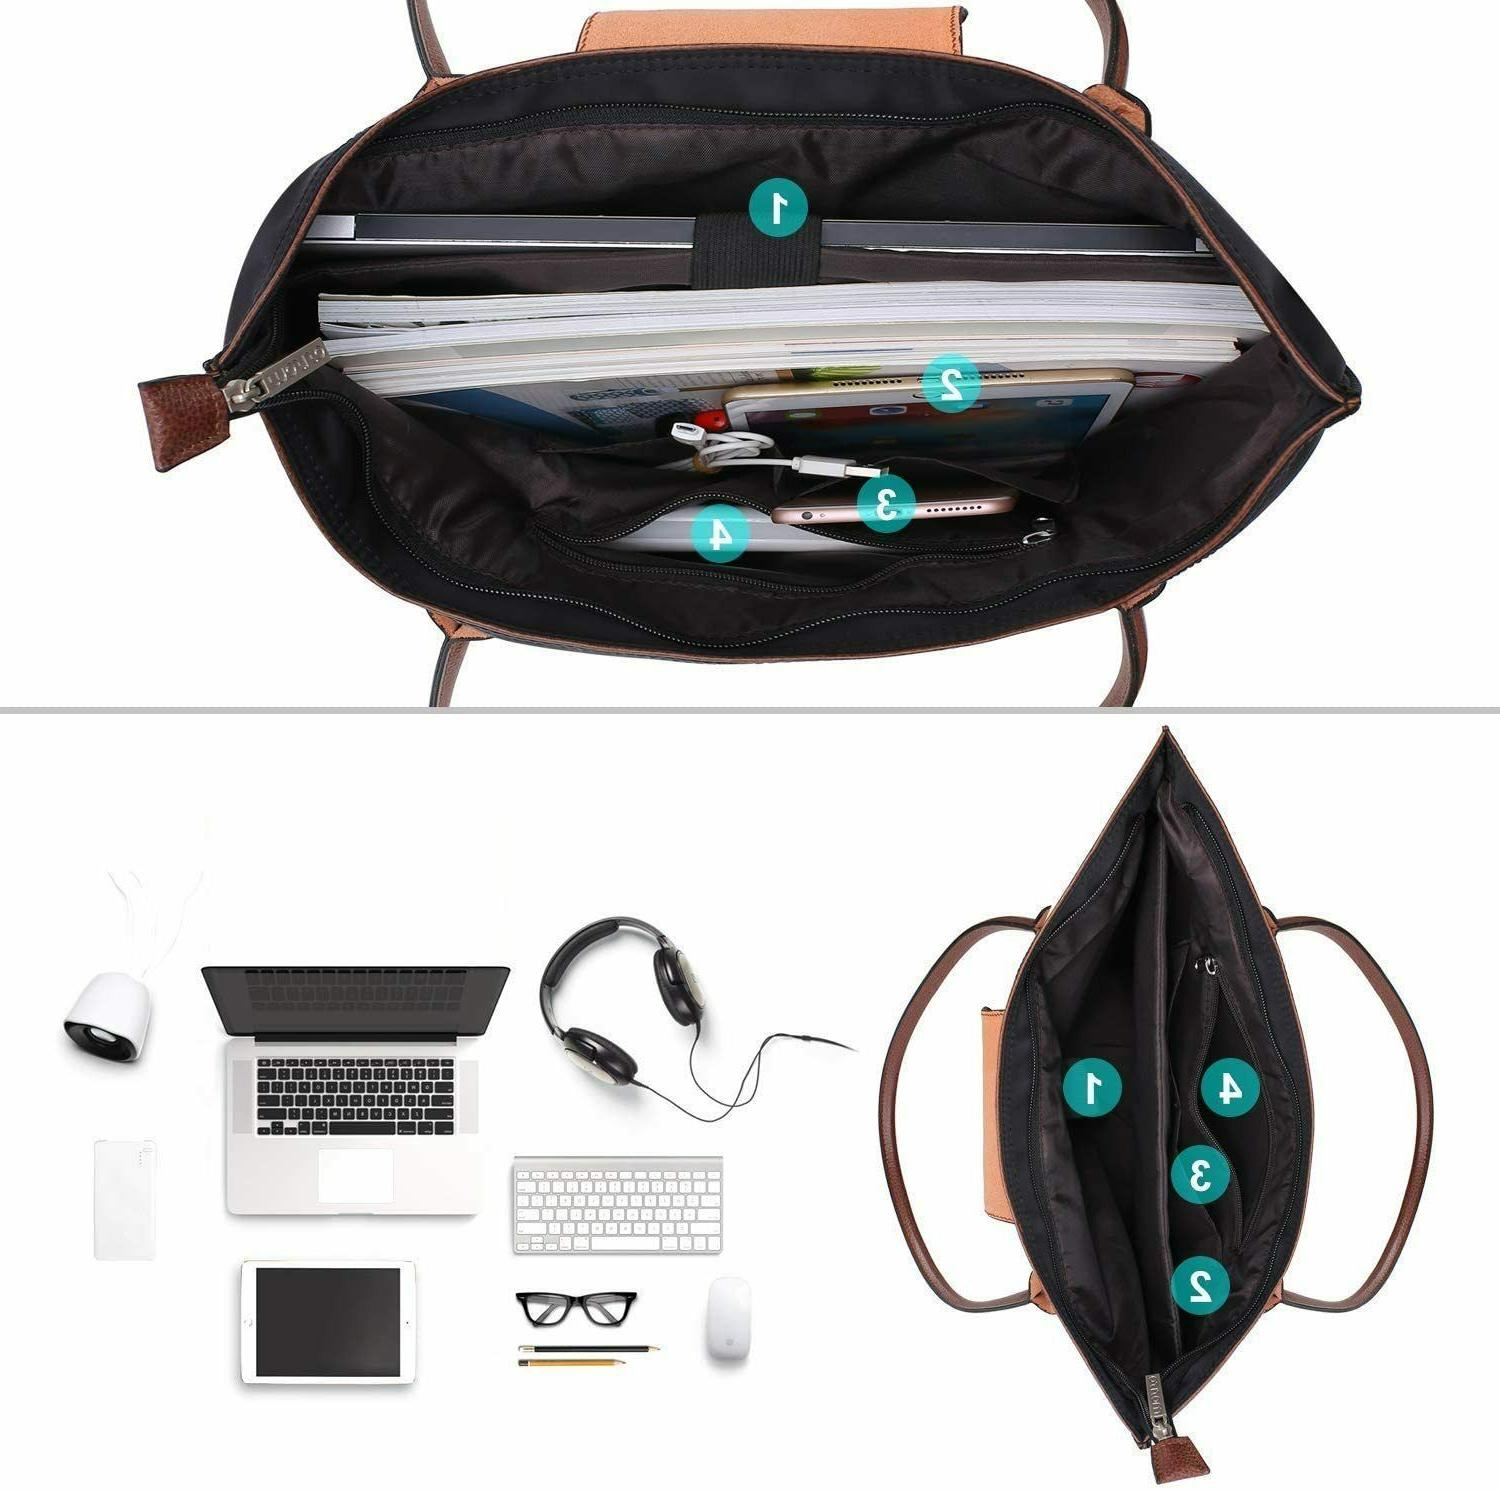 15.6 Laptop Bag for Office Travel Briefcase